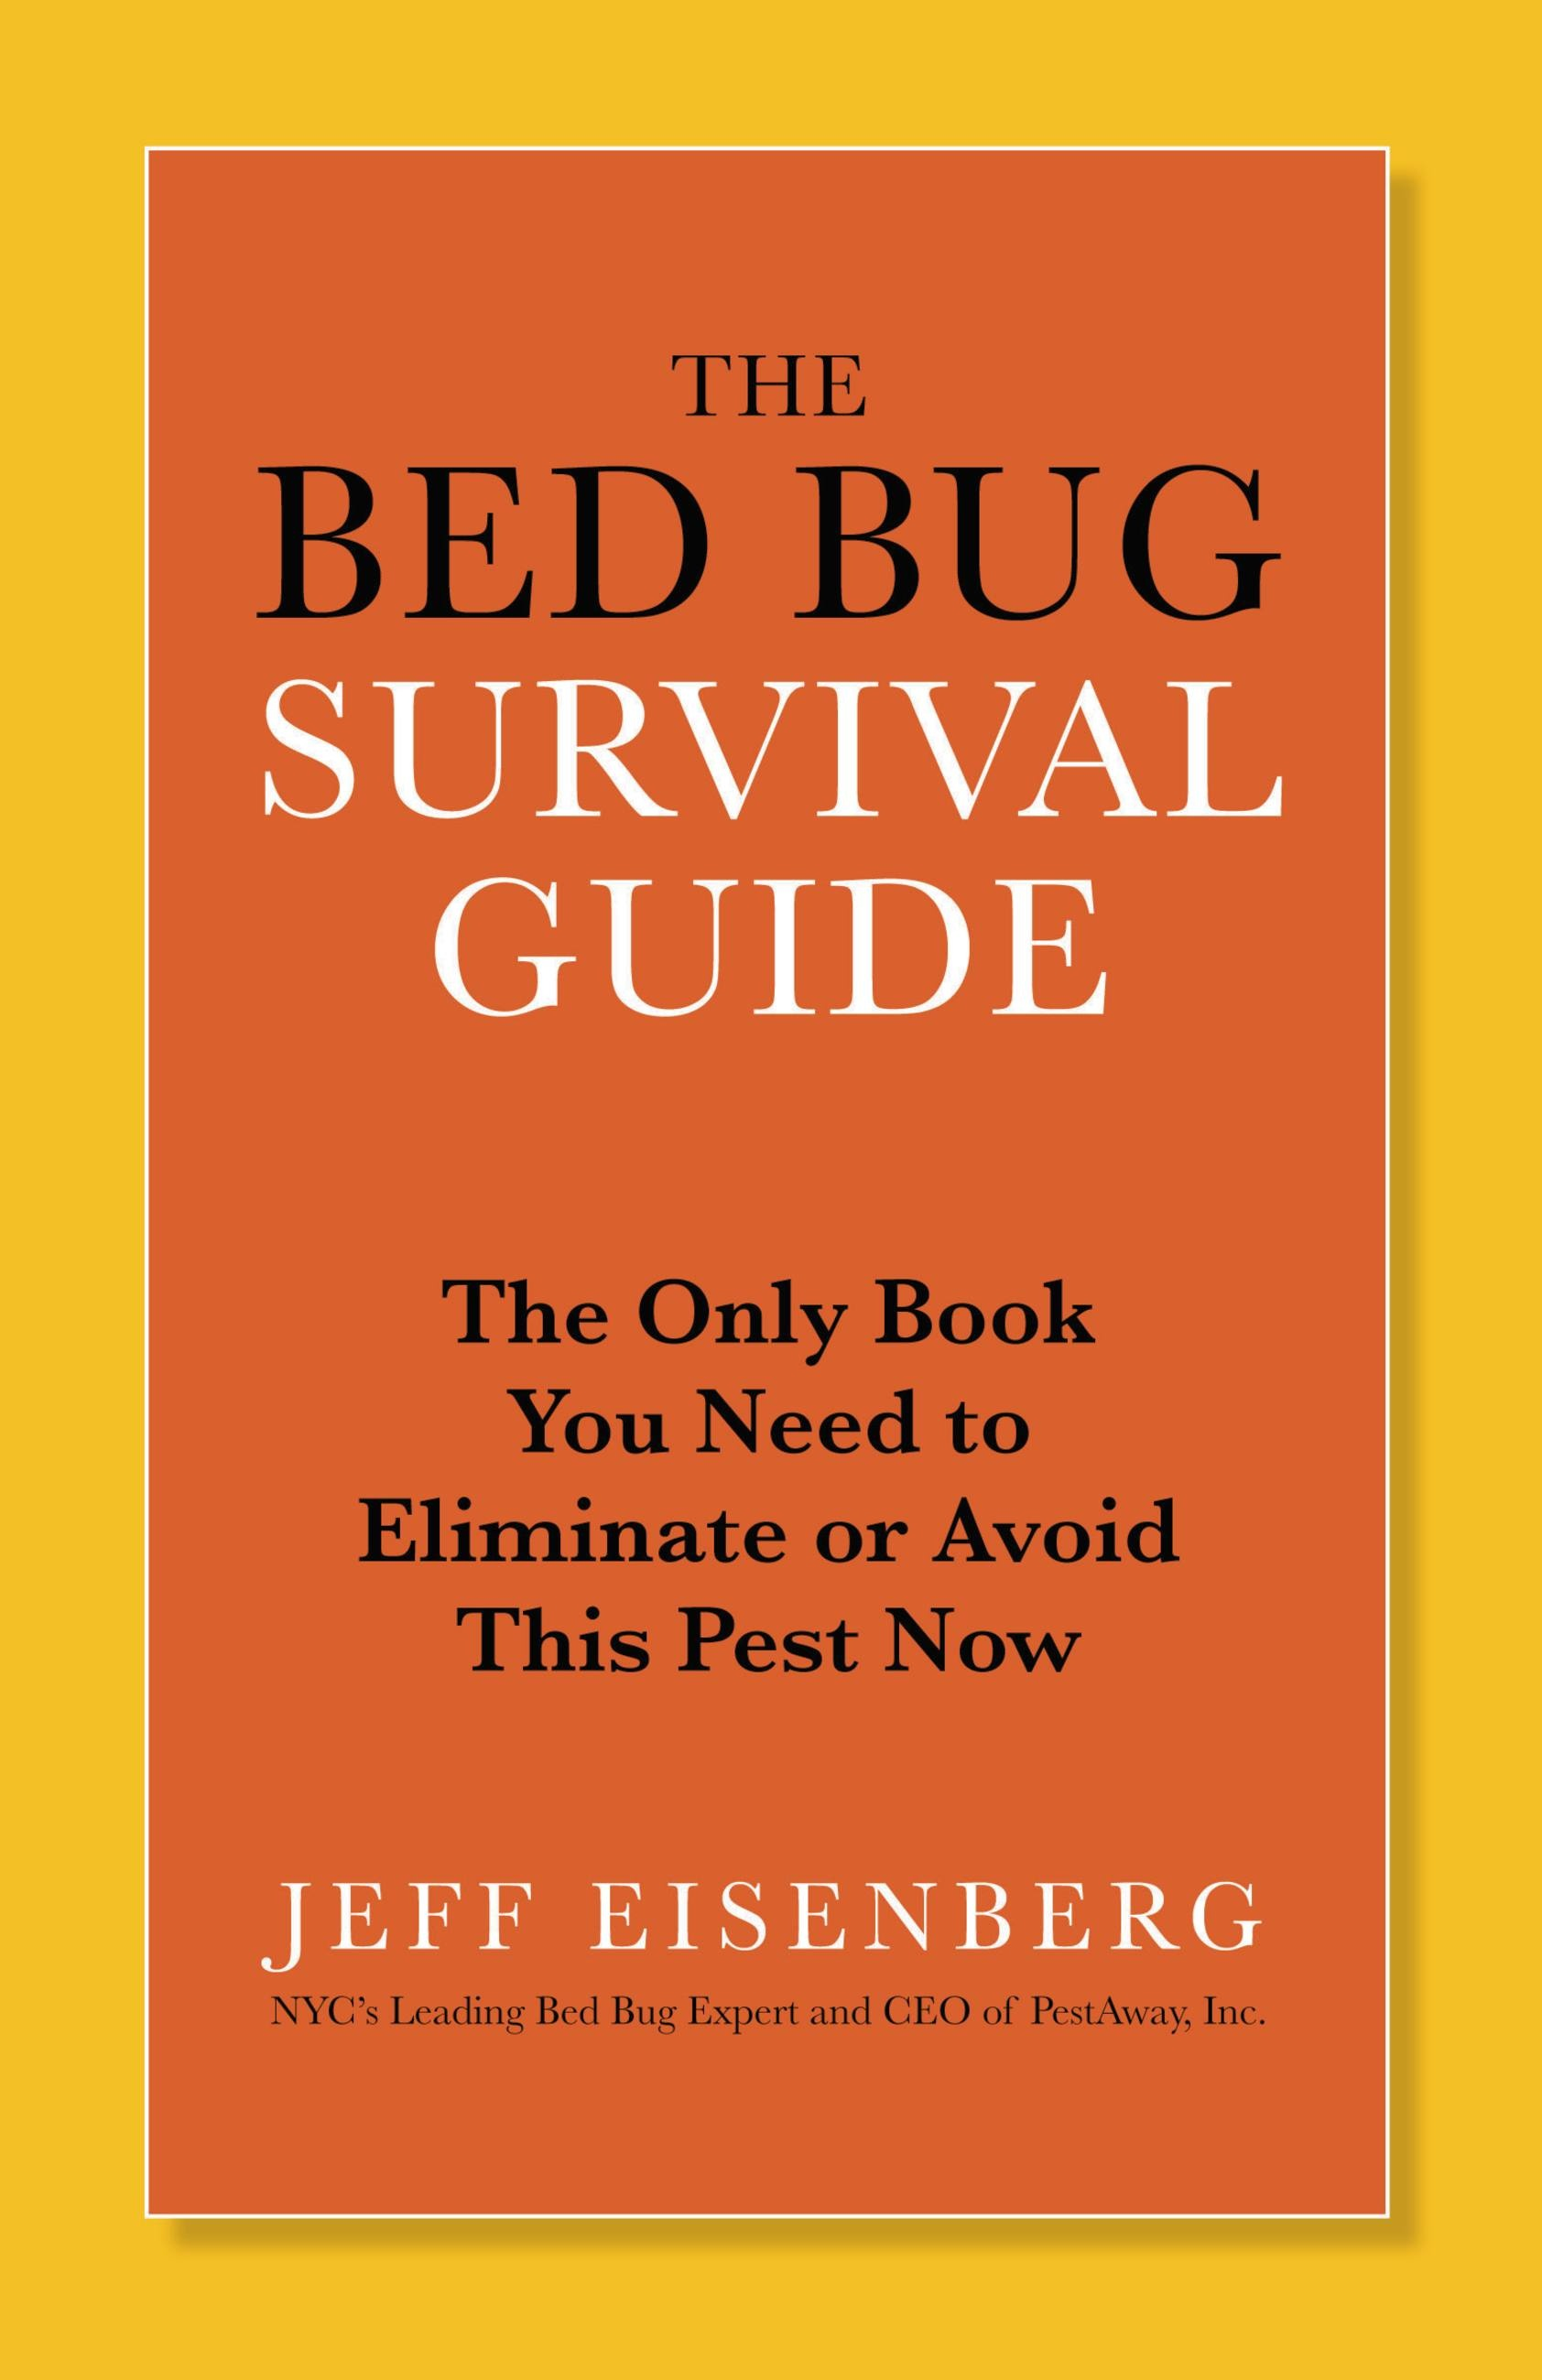 The Bed Bug Survival Guide